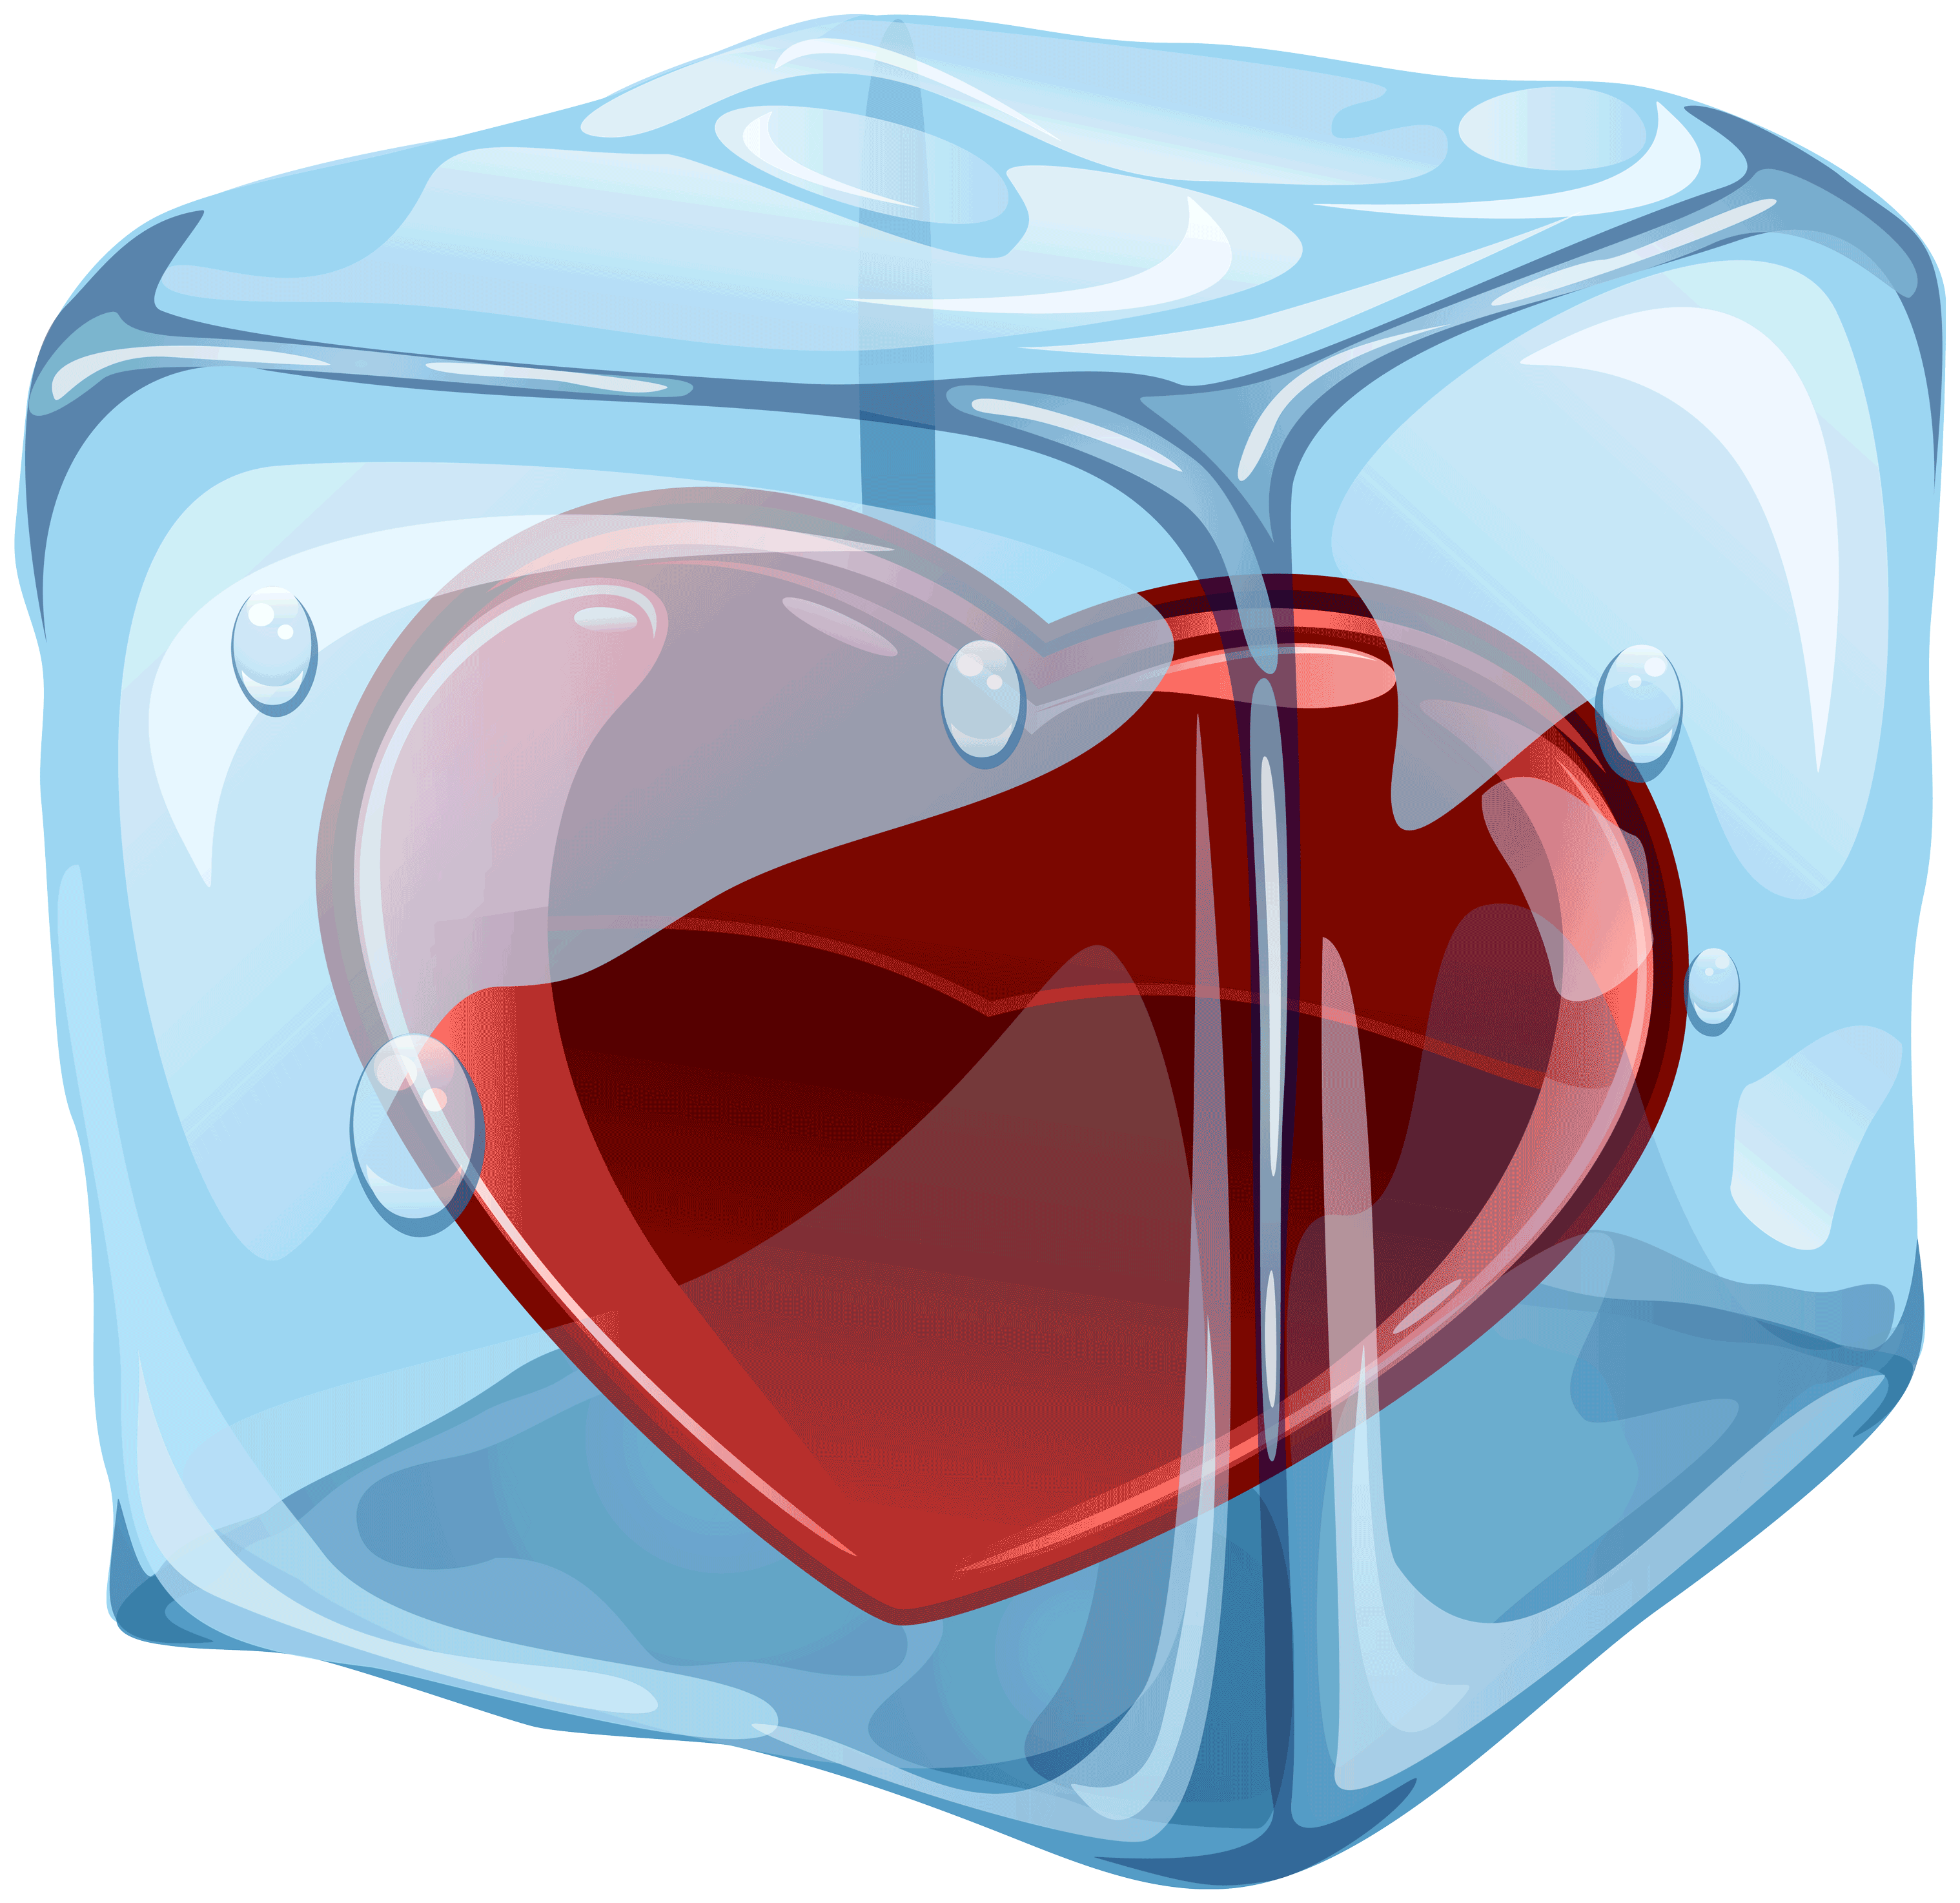 Heart In Ice Cube Png Clipart Clip Art Broken Heart Emoji Ice Cube Png